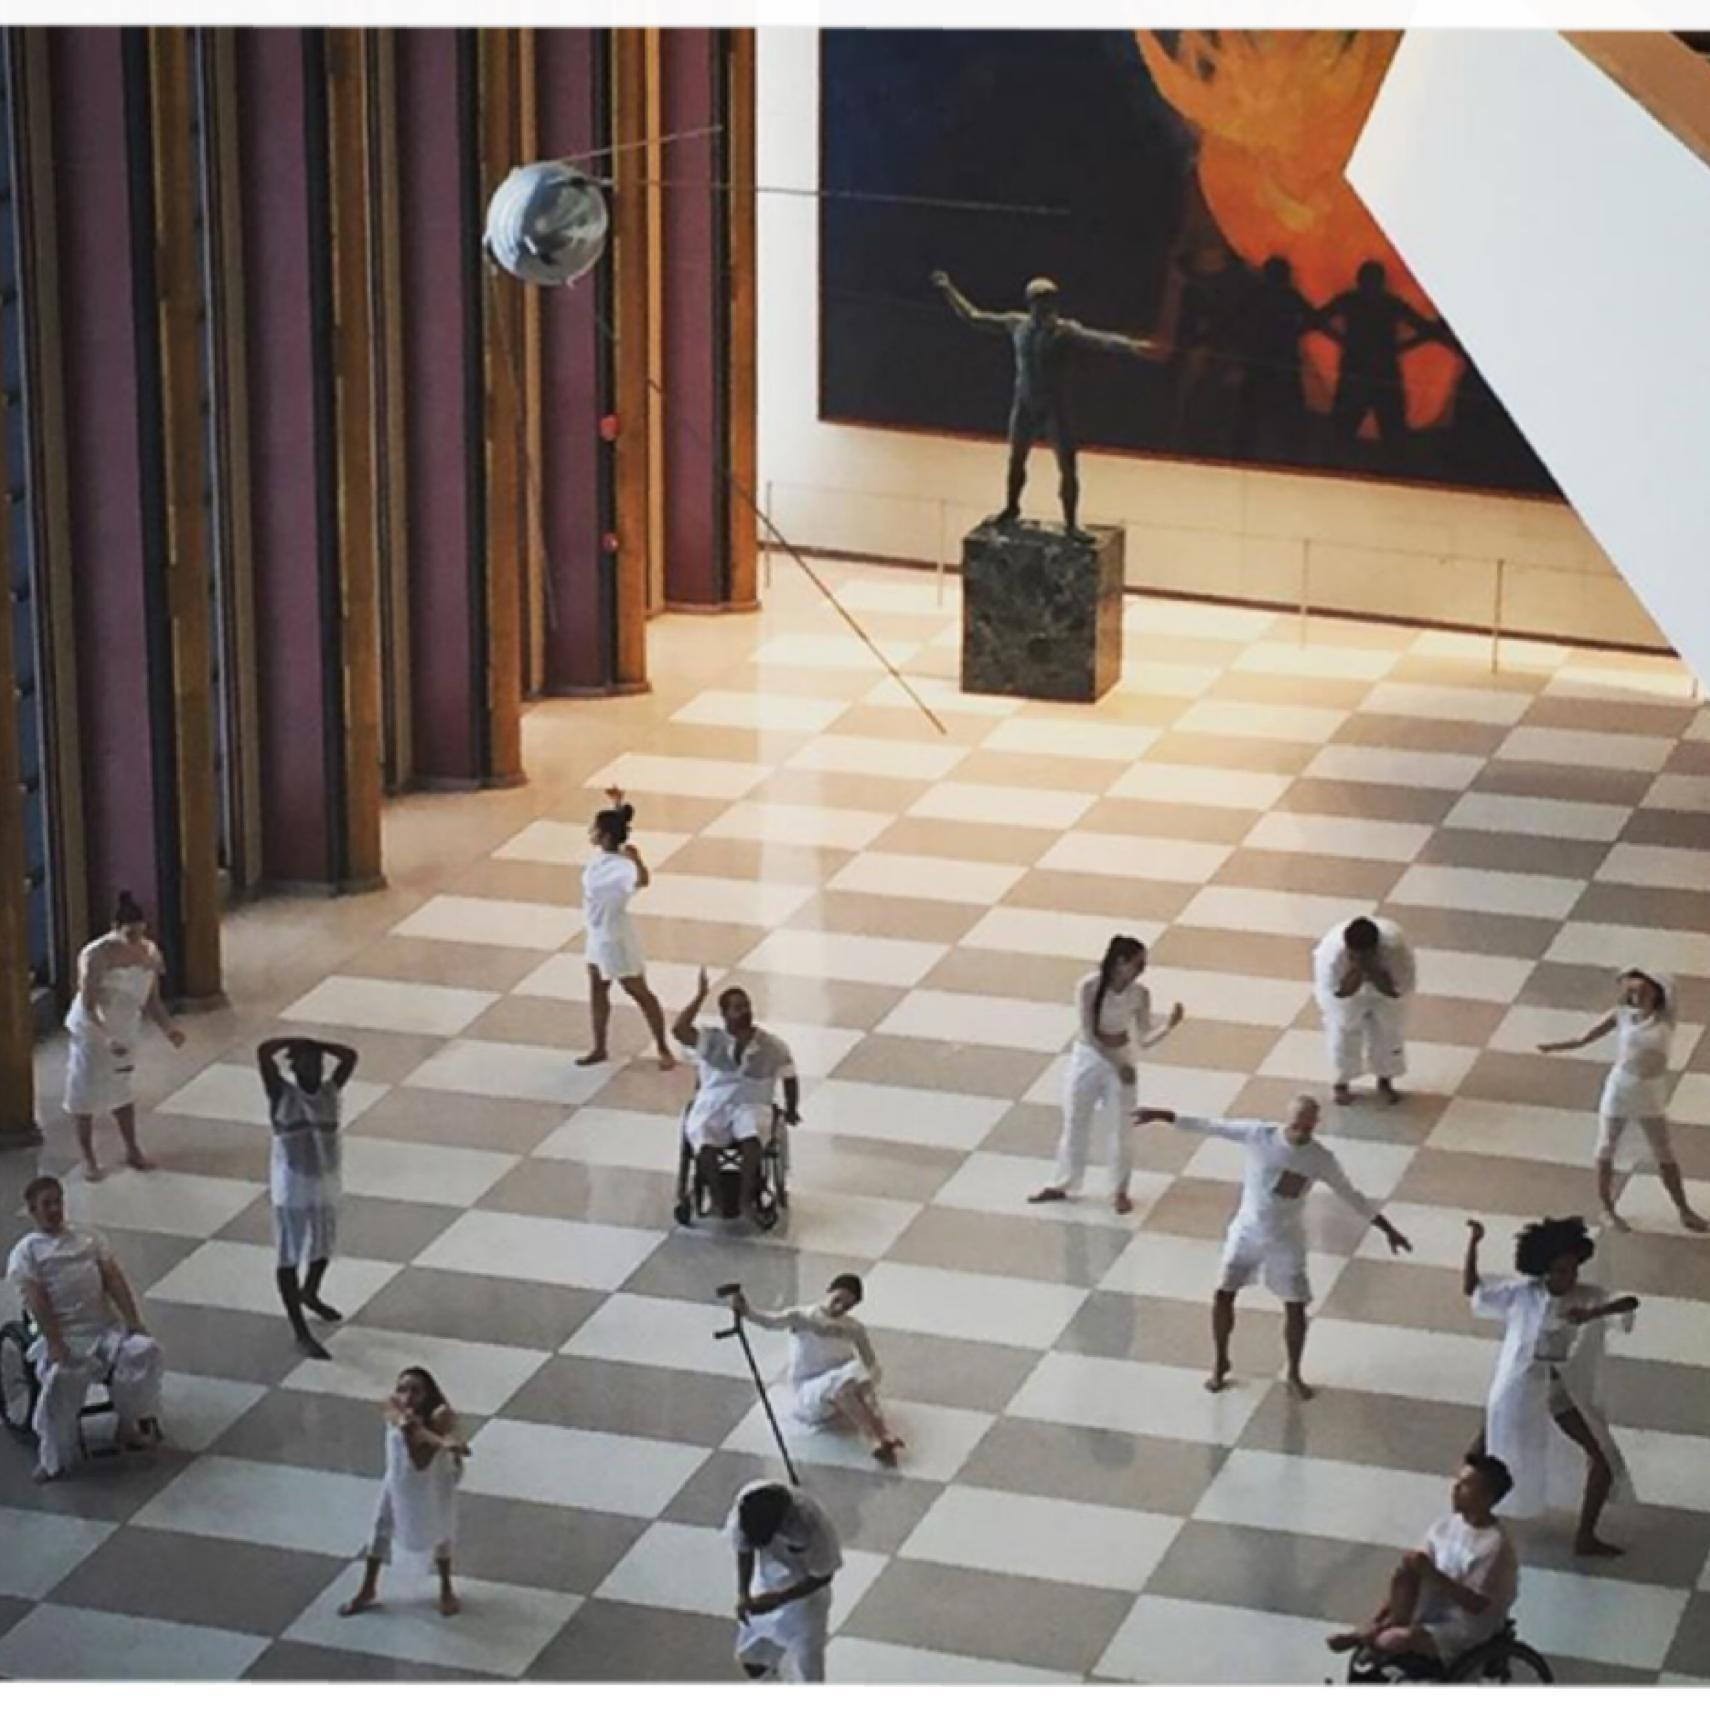 Dancers pose in different positions like in a sculpture garden. Some are in wheelchairs, some are standing, one poses on the ground with a propped up cane. Dancers are dressed in all white and they are in a big open room in UN headquarters.